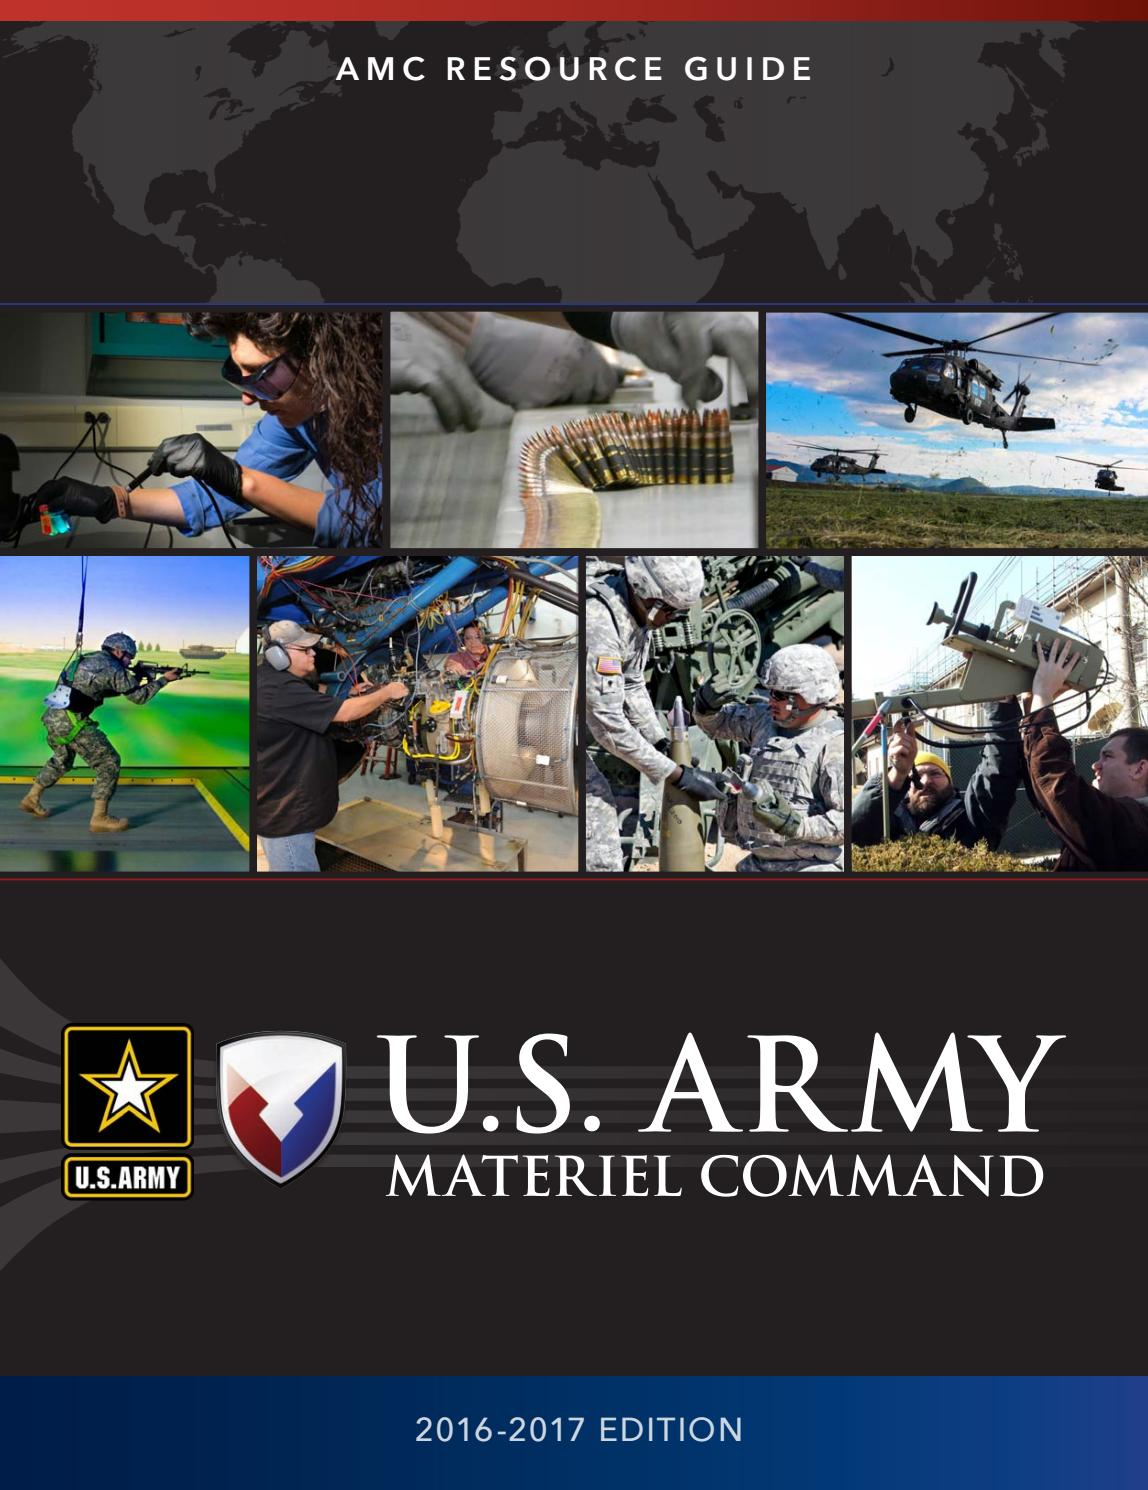 U.S. Army Materiel Command Resource Guide 2016-2017 by Faircount Media  Group - issuu